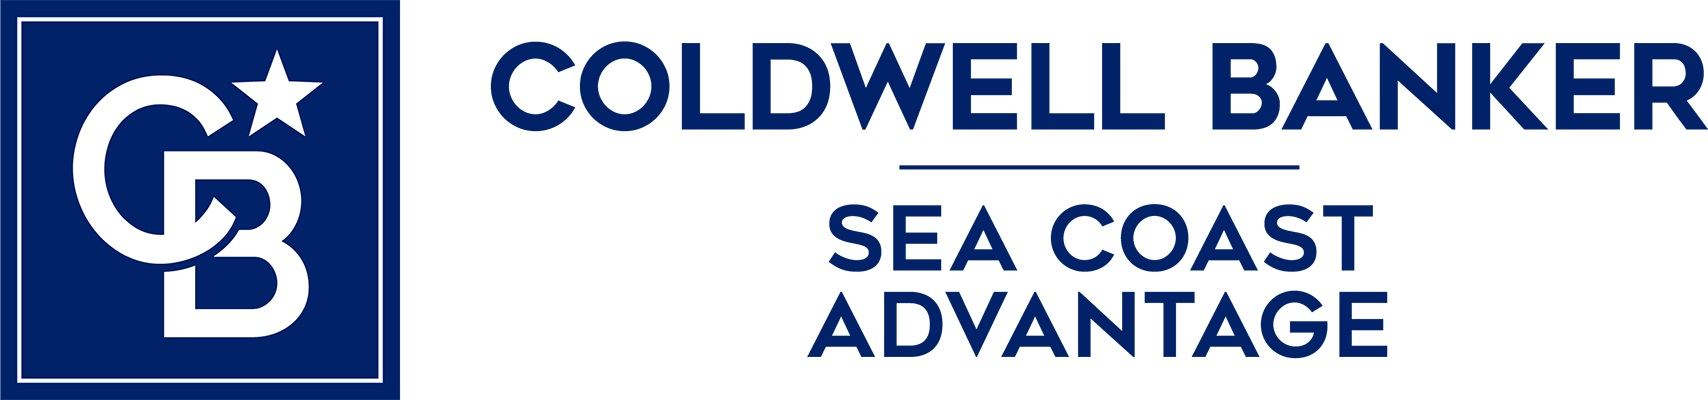 Holly Hobbs - Coldwell Banker Sea Coast Advantage Realty Logo